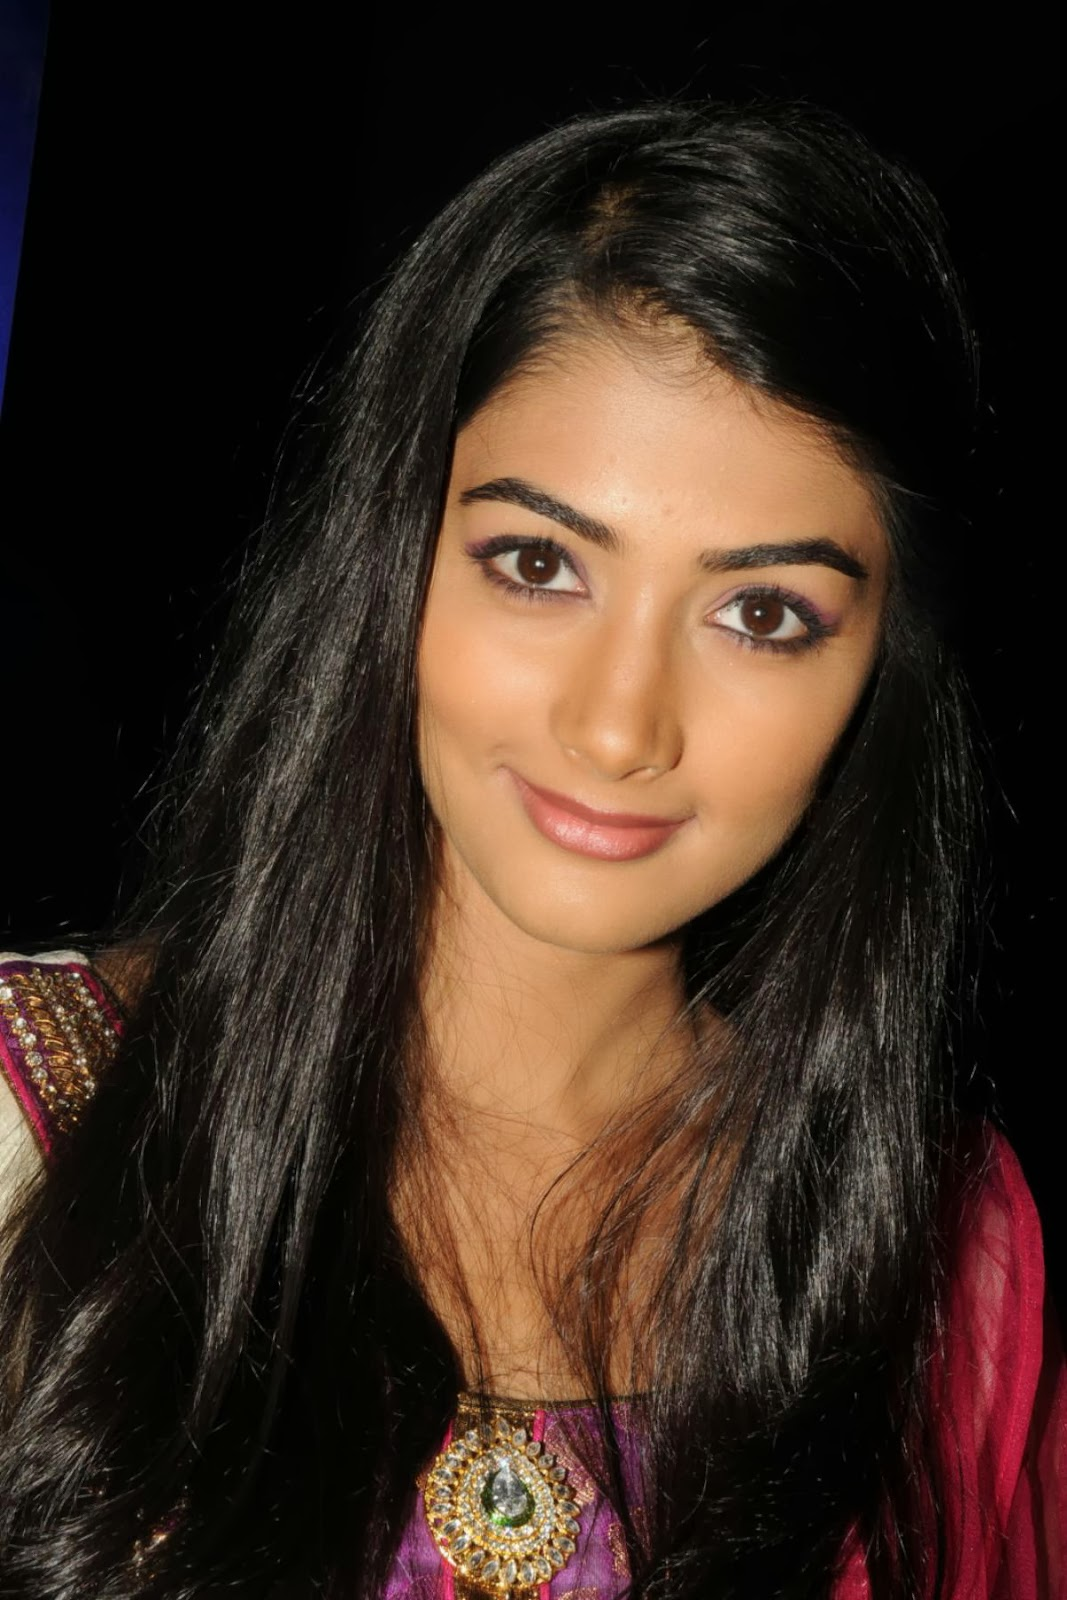 11 Best Pooja Unit Images On Pinterest: Pooja Hegde Latest Unseen HD Wallpapers